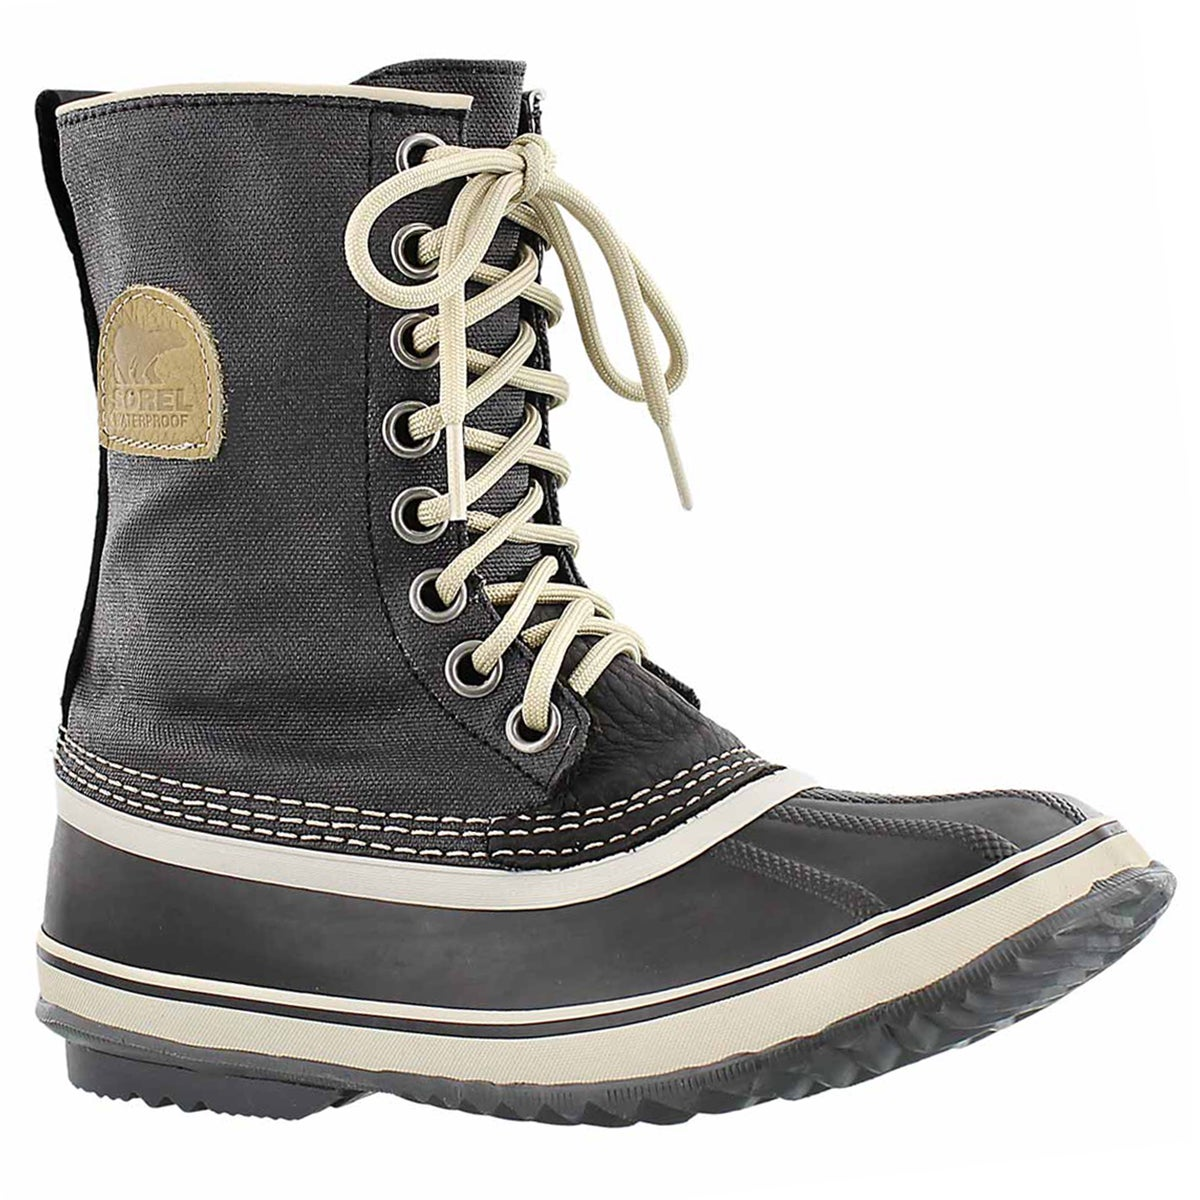 Women's 1964 PREMIUM CVS black winter boots